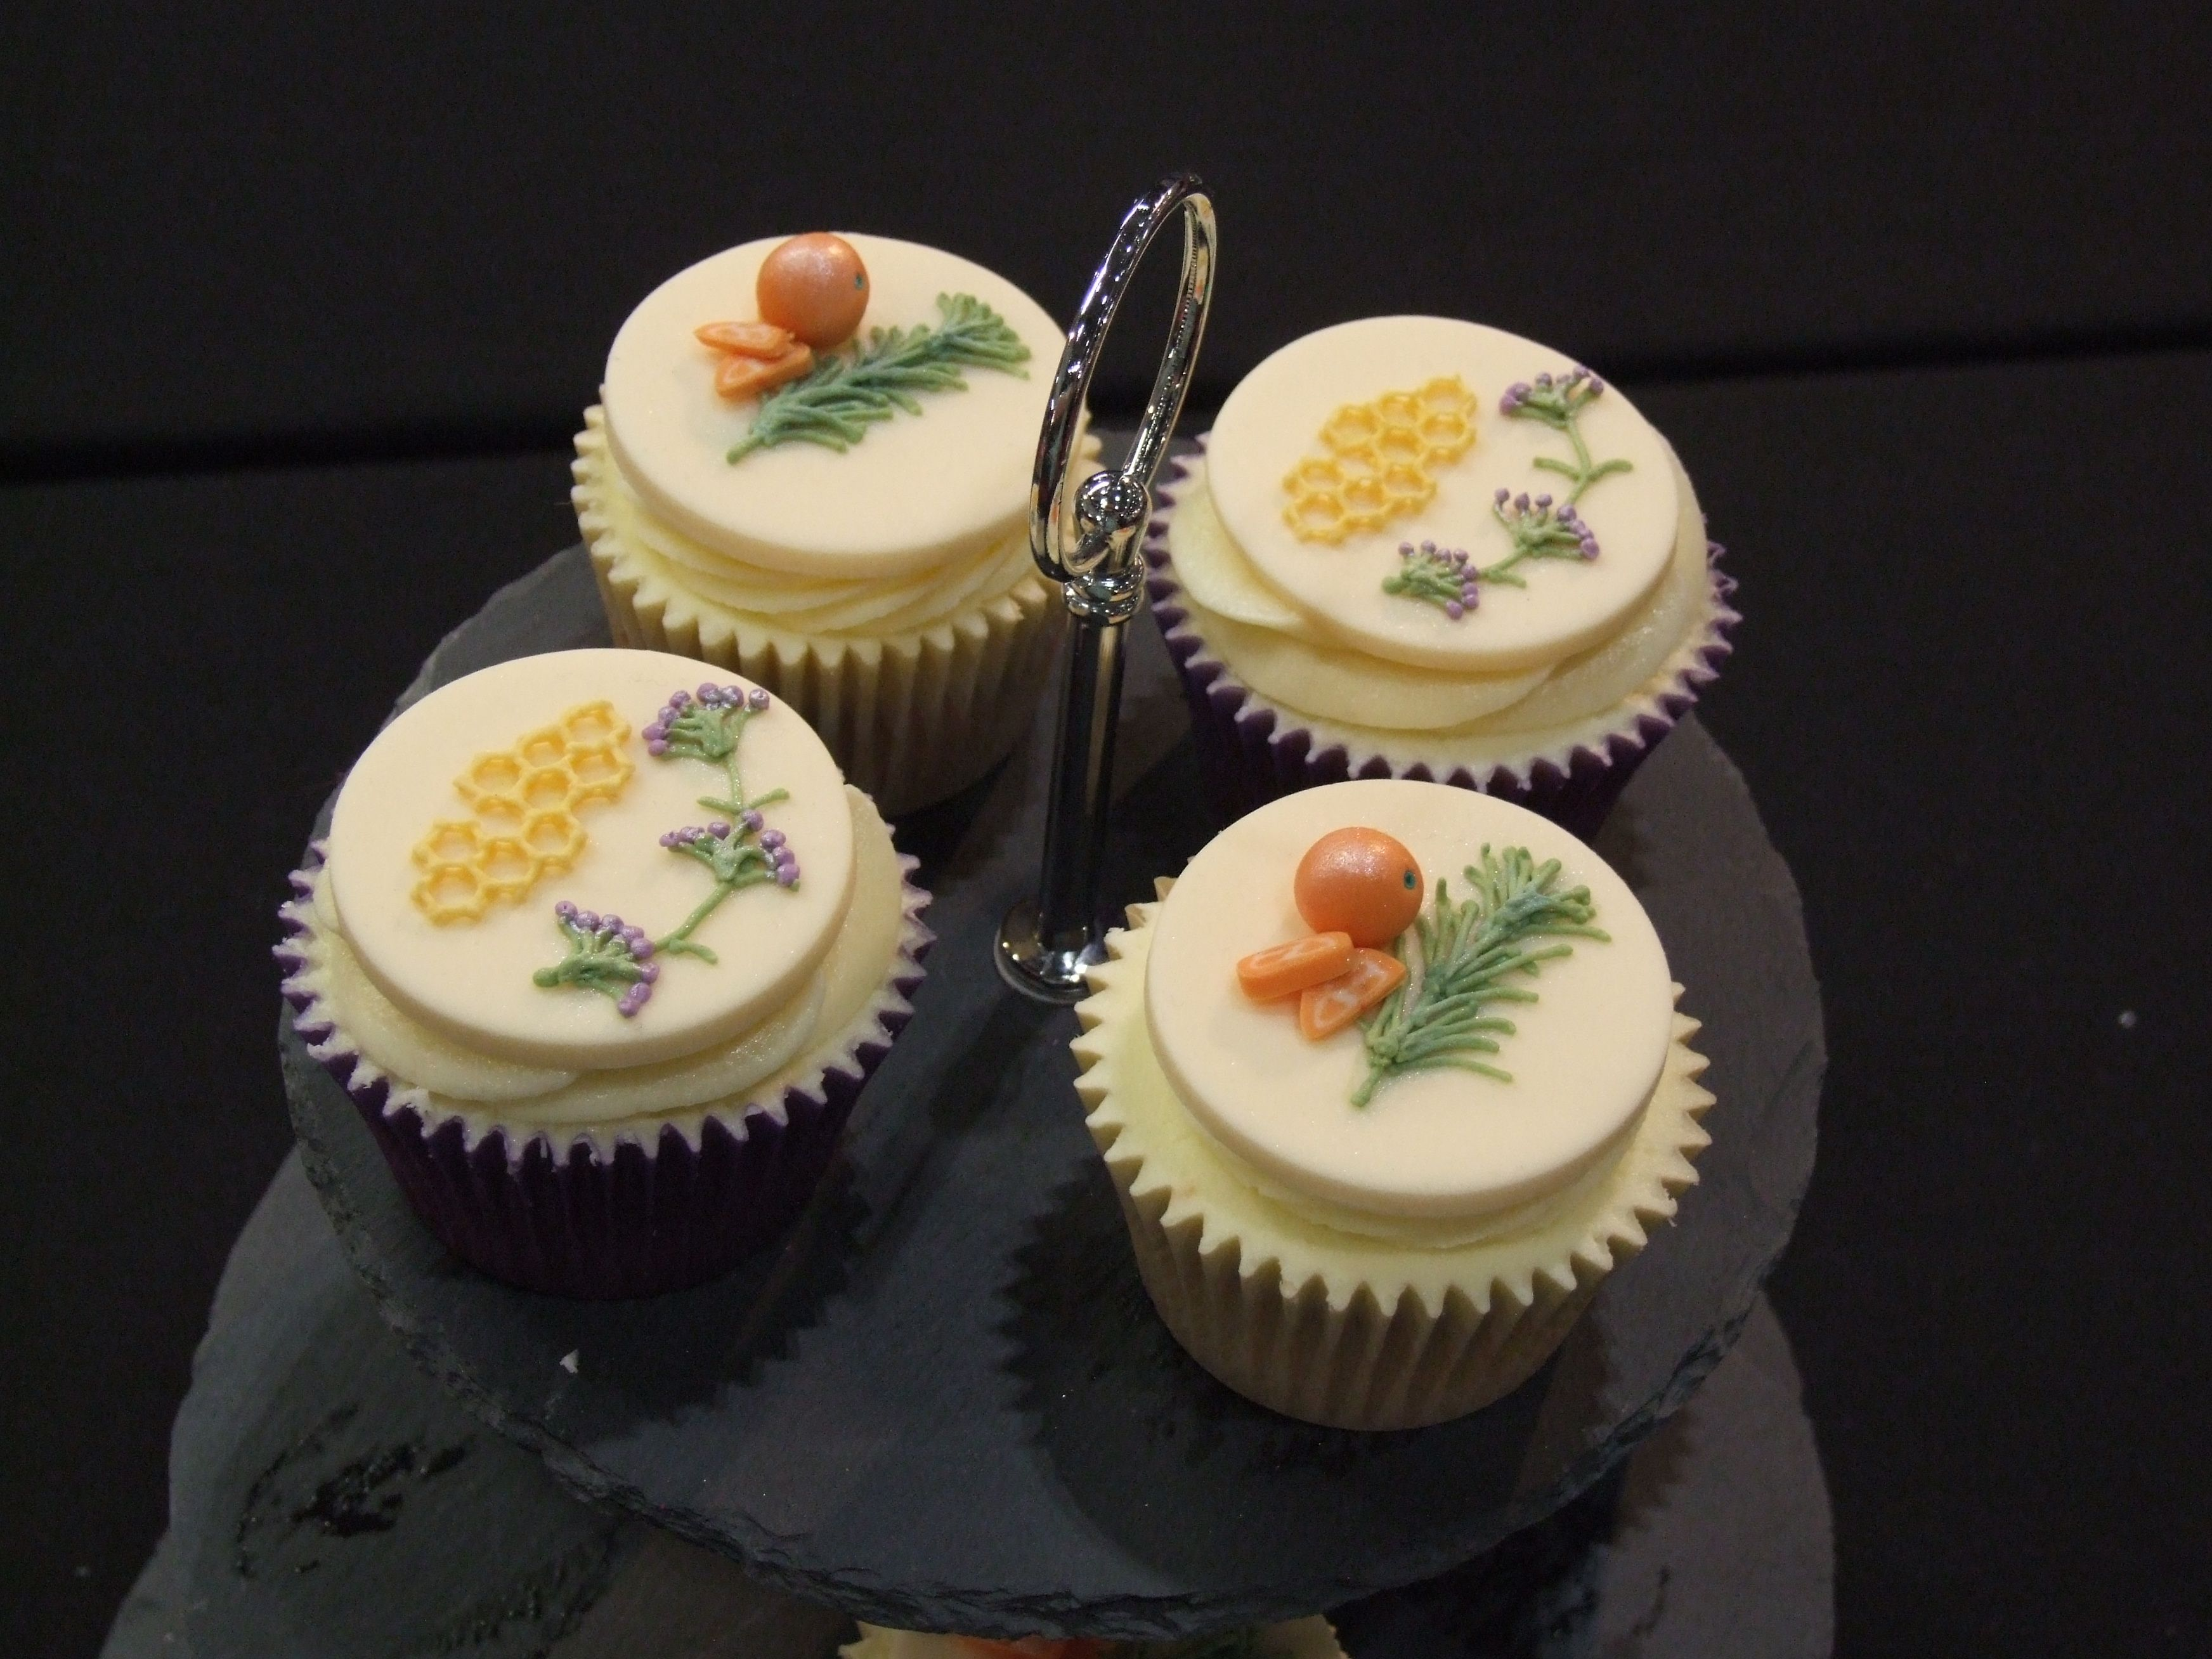 Lavender & Honey Gluten Free cupcakes and Rosemary & Orange Gluten Free cupcakes. Won Gold at Cake International, London 2014